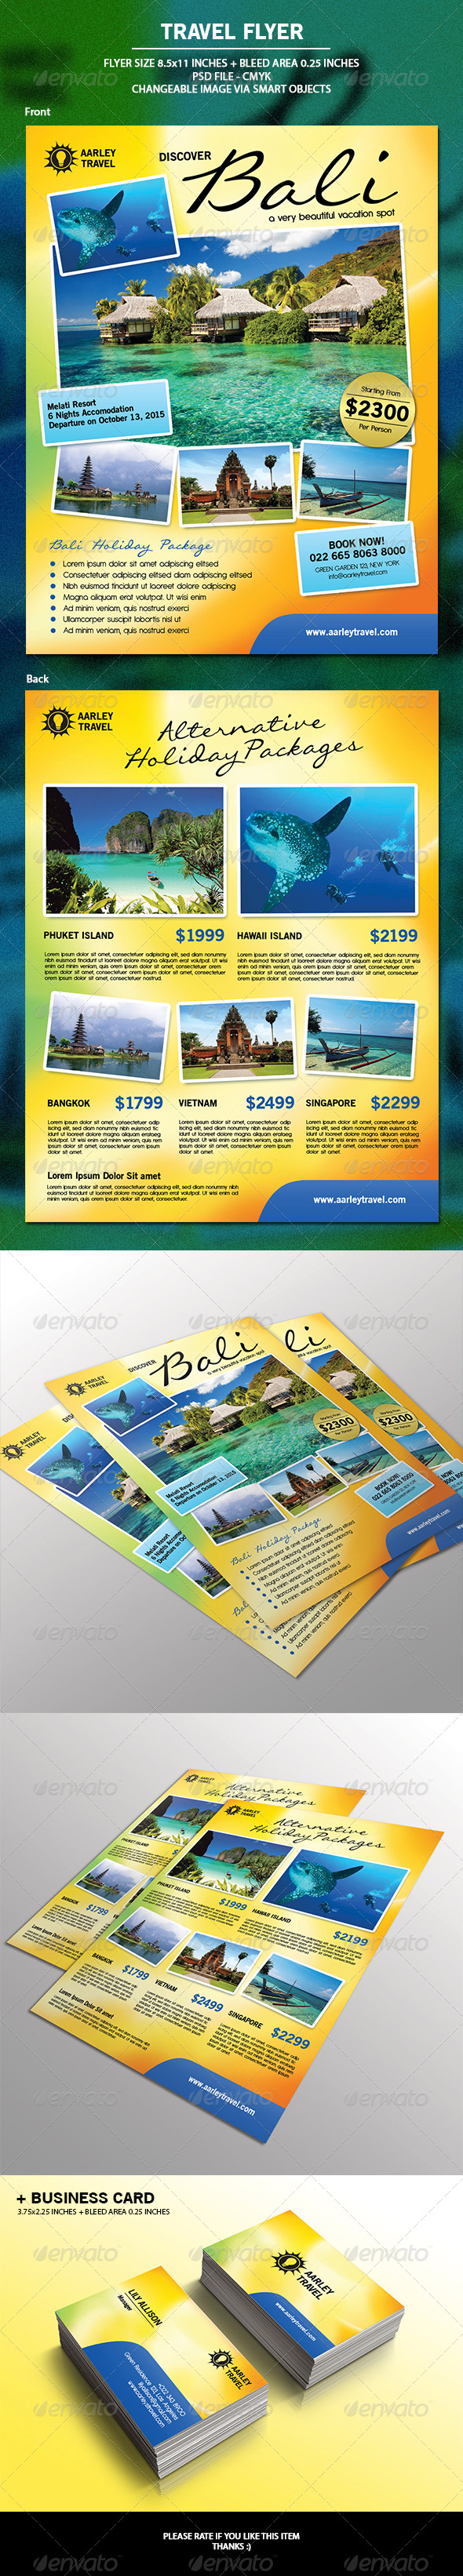 GraphicRiver Travel Flyer & Business Card 6867642